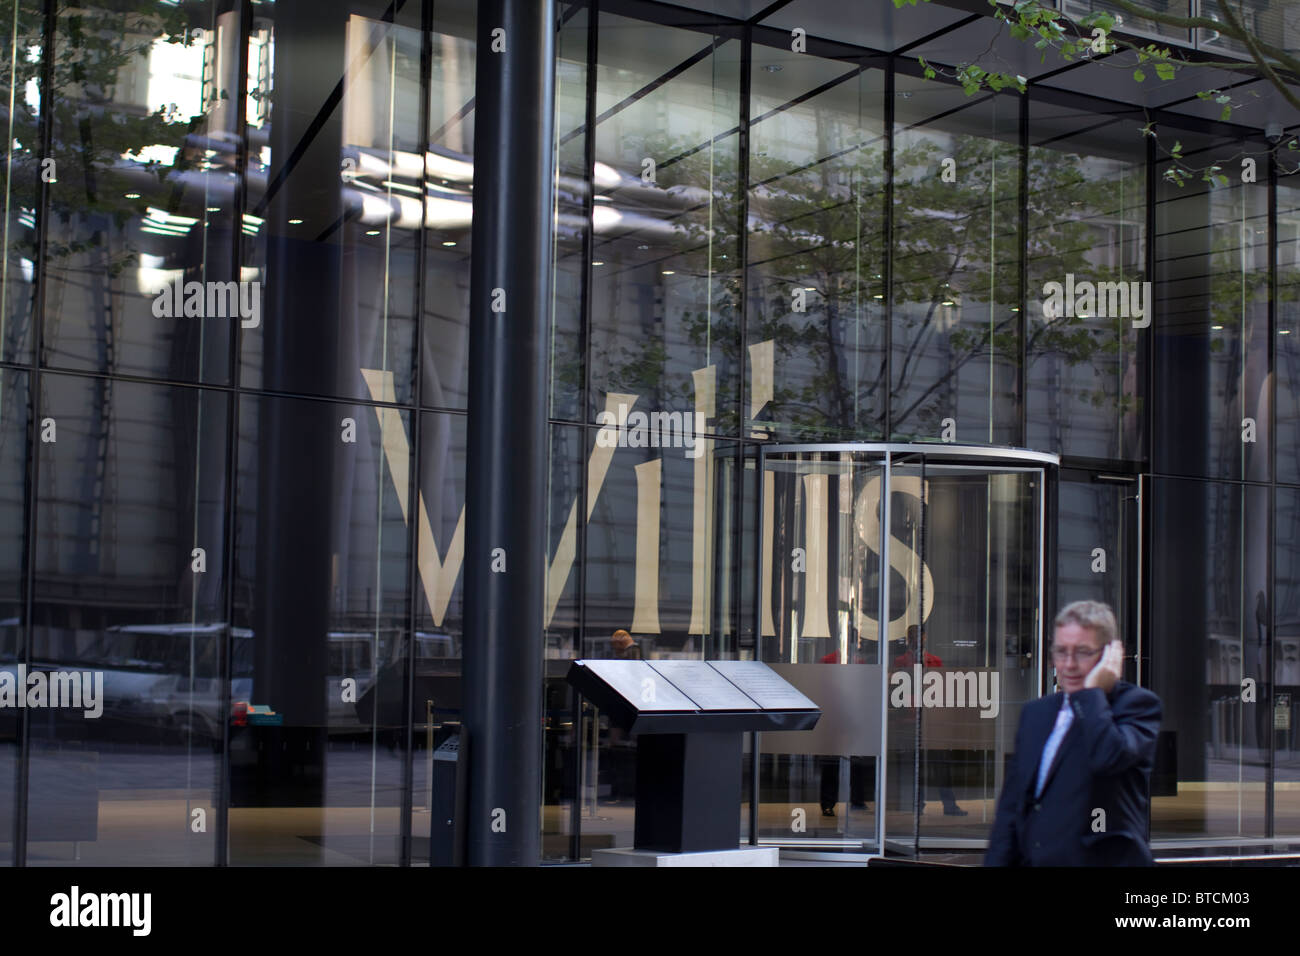 Willis building headquarters of Willis Group Holdings insurance Lime Street - Stock Image